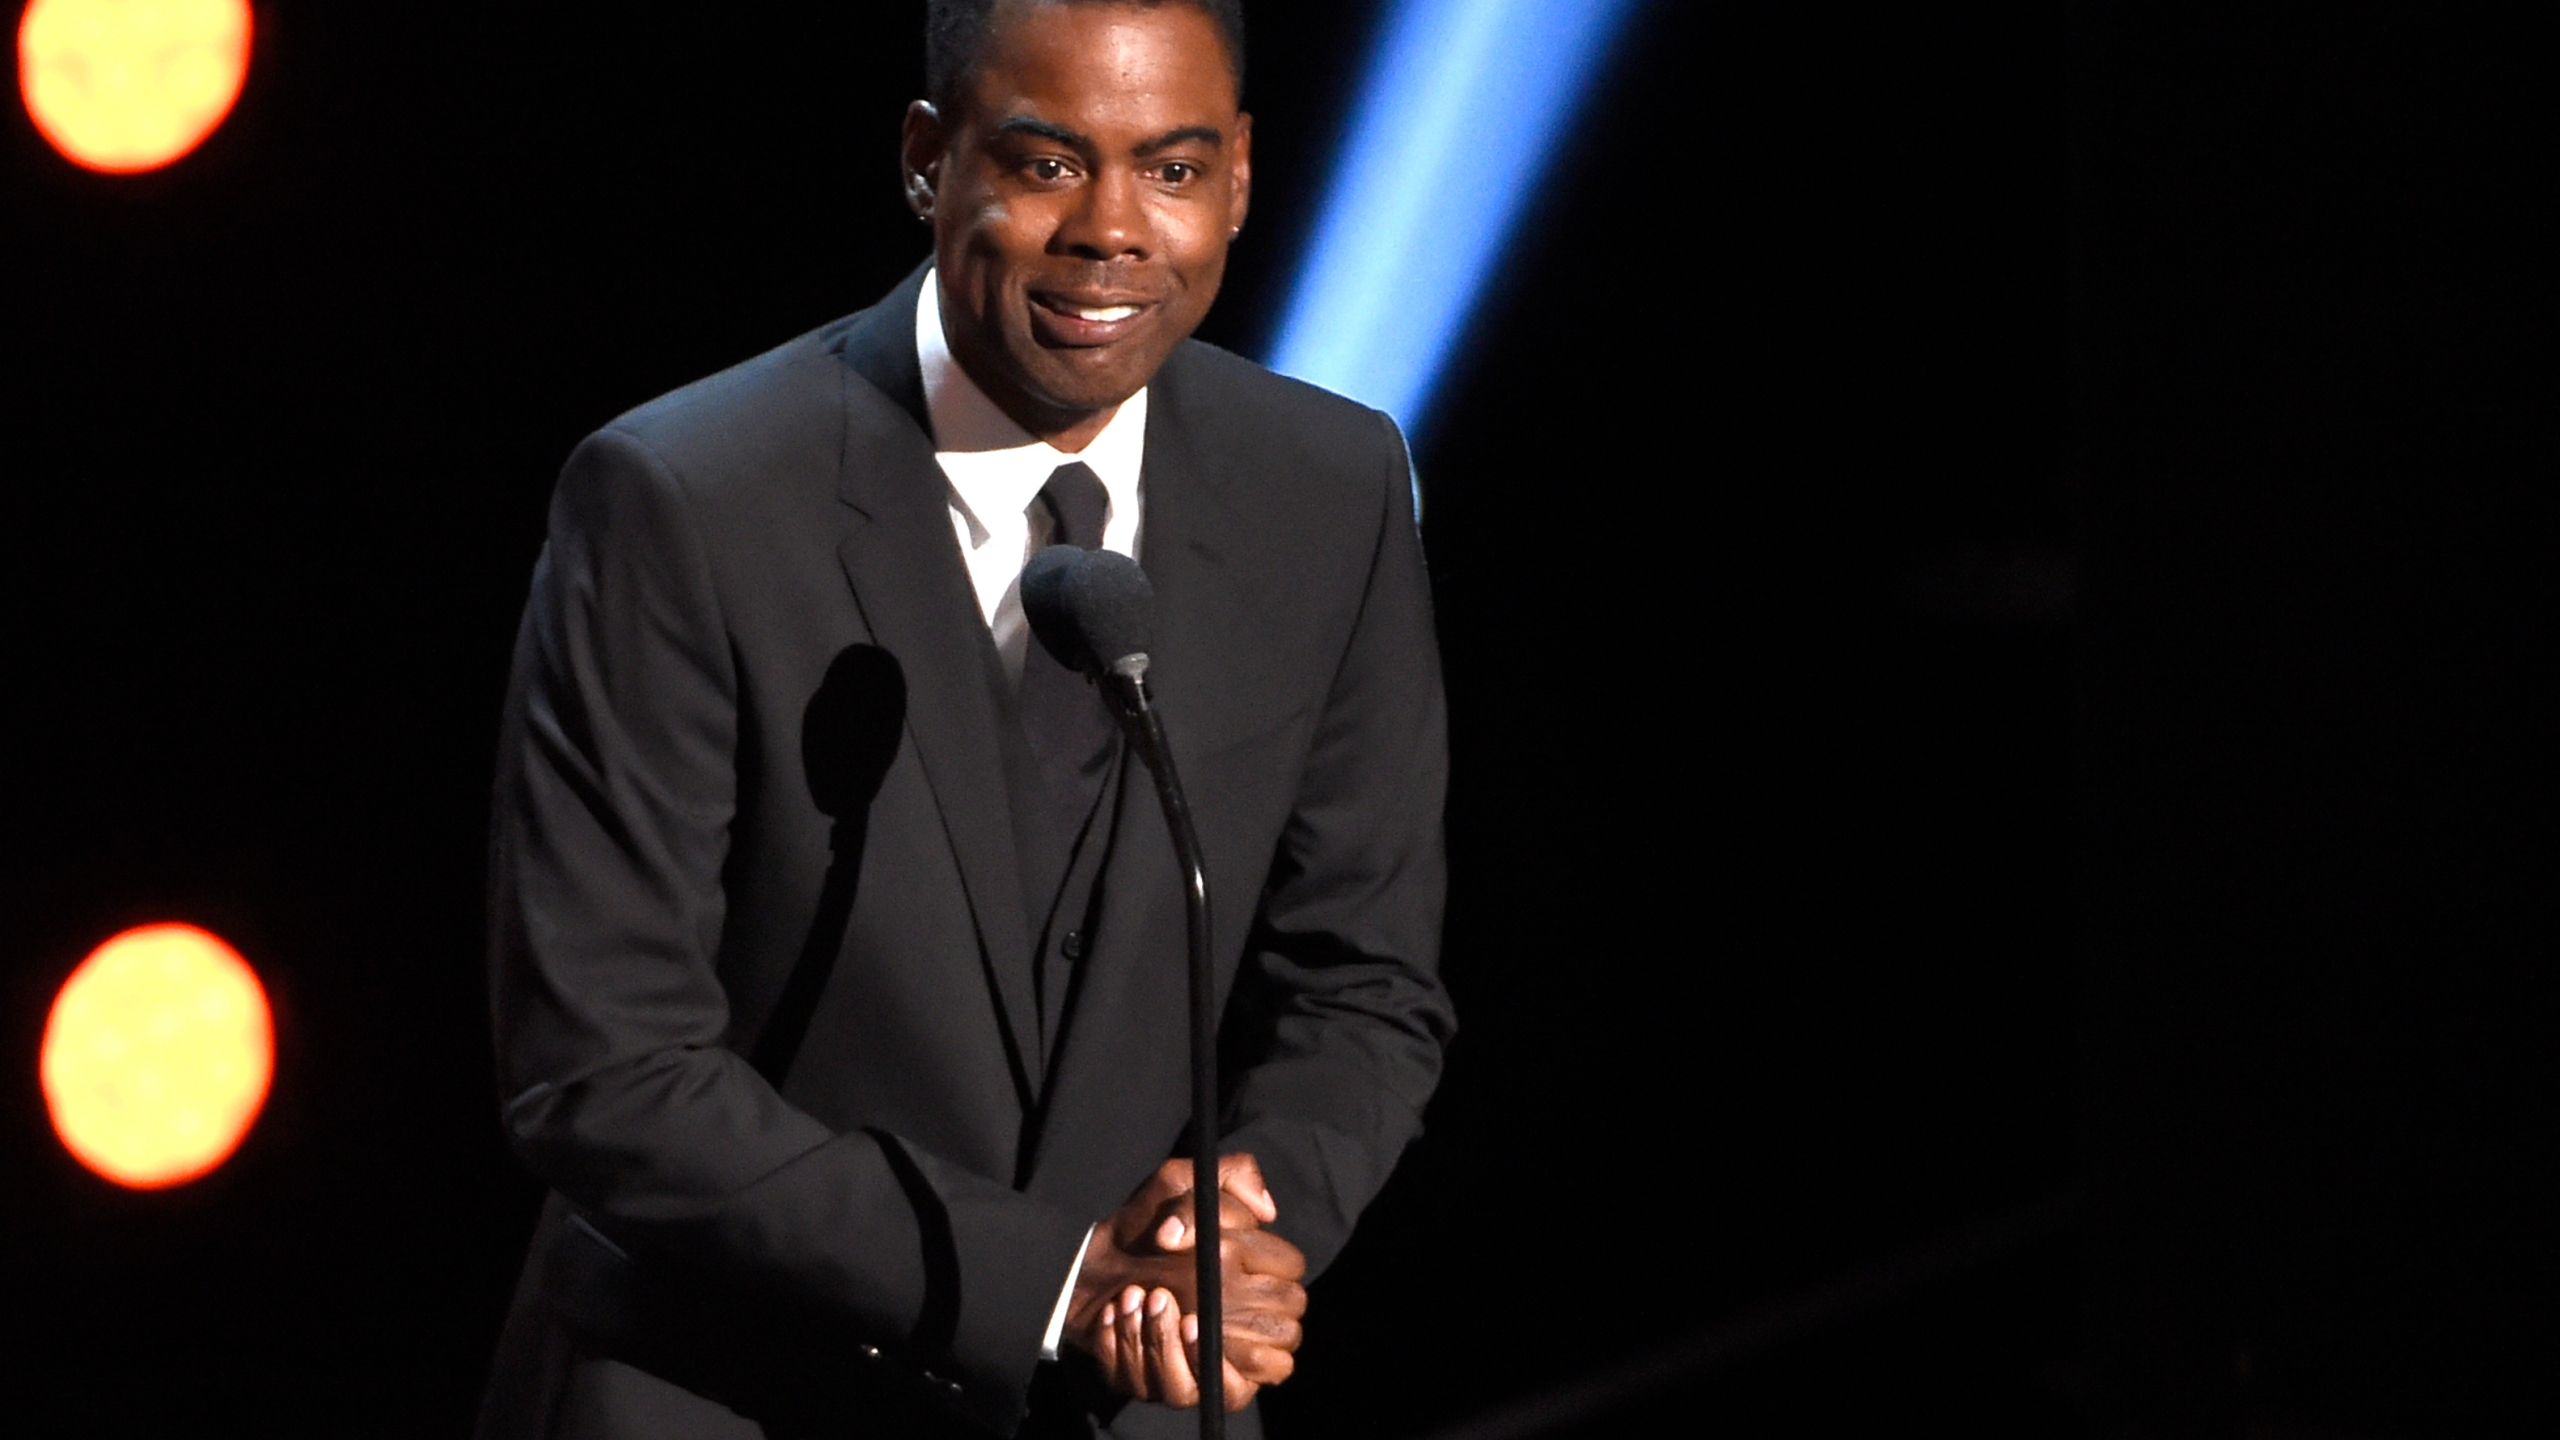 In this March 30, 2019 file photo, Chris Rock presents the award for outstanding comedy series at the 50th annual NAACP Image Awards at the Dolby Theatre in Los Angeles. (Chris Pizzello/Invision/AP, File)